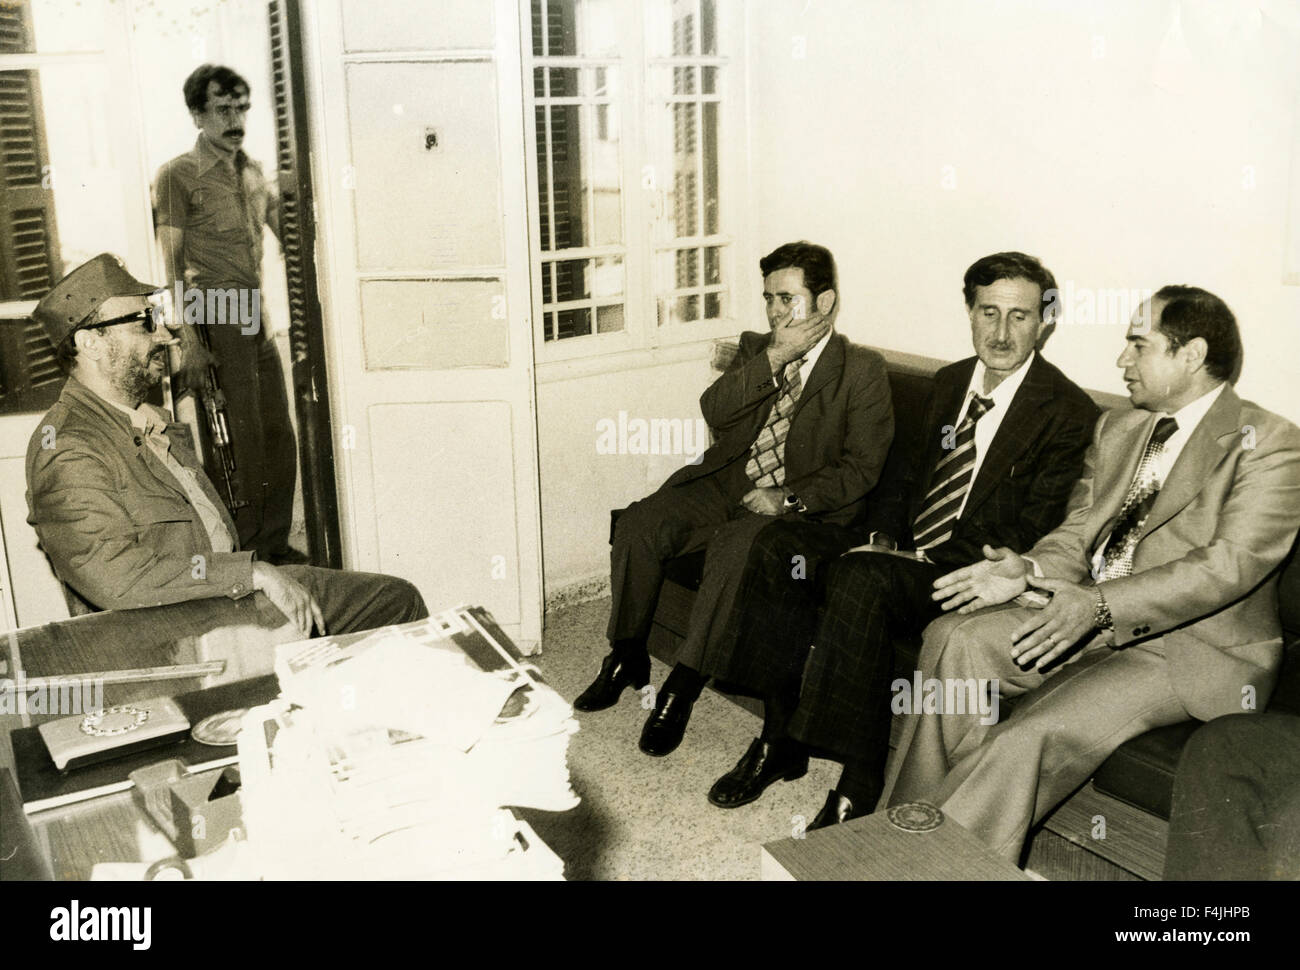 Portrait of Arafat and Lebanese leaders - Stock Image